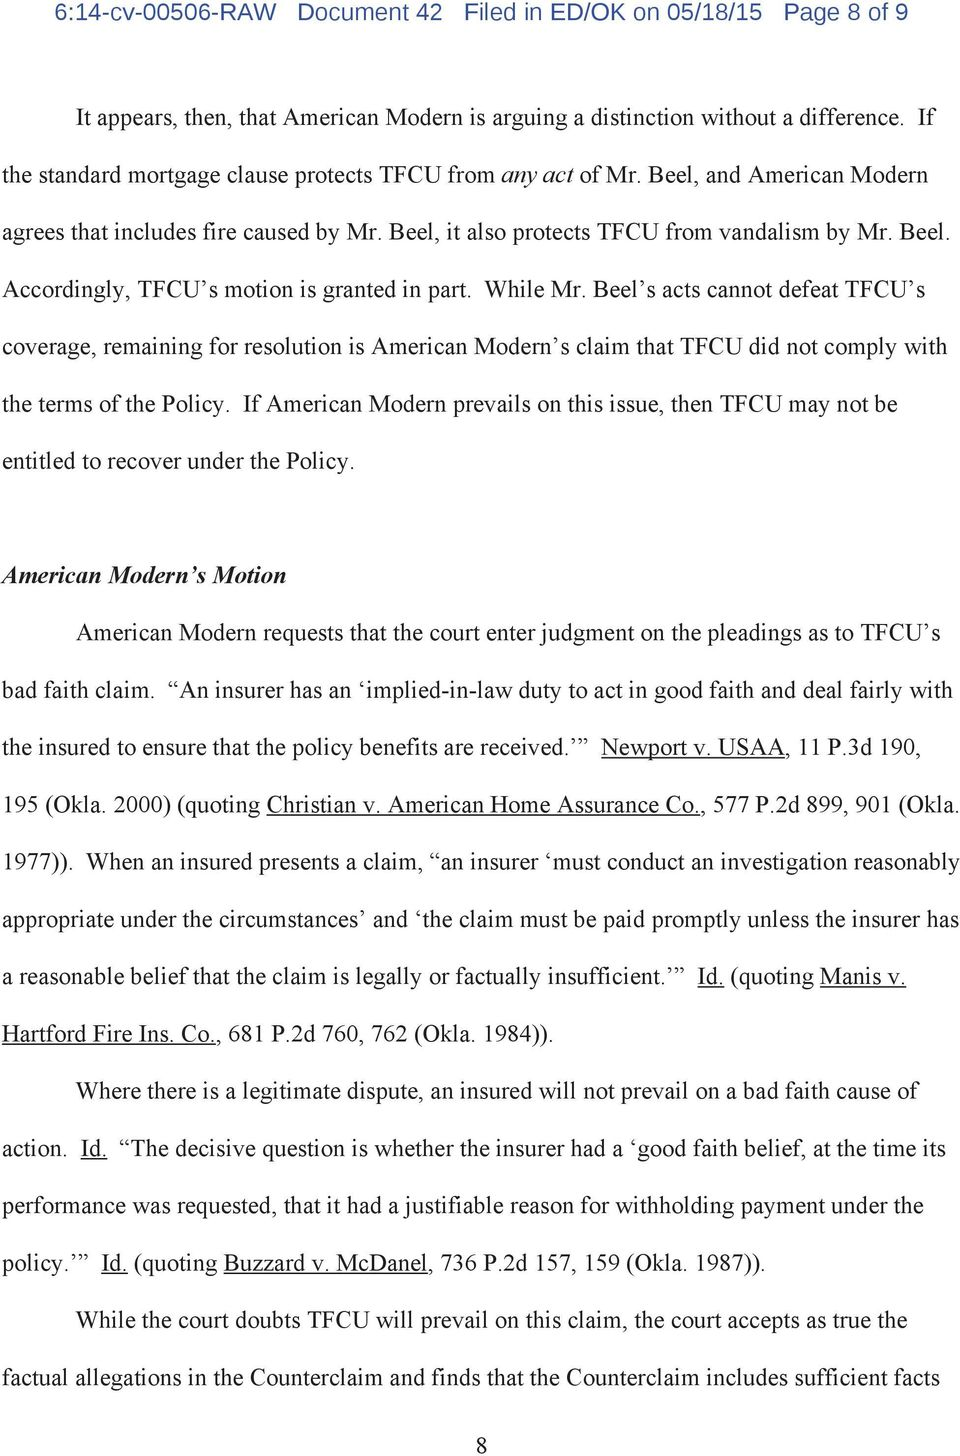 While Mr. Beel s acts cannot defeat TFCU s coverage, remaining for resolution is American Modern s claim that TFCU did not comply with the terms of the Policy.